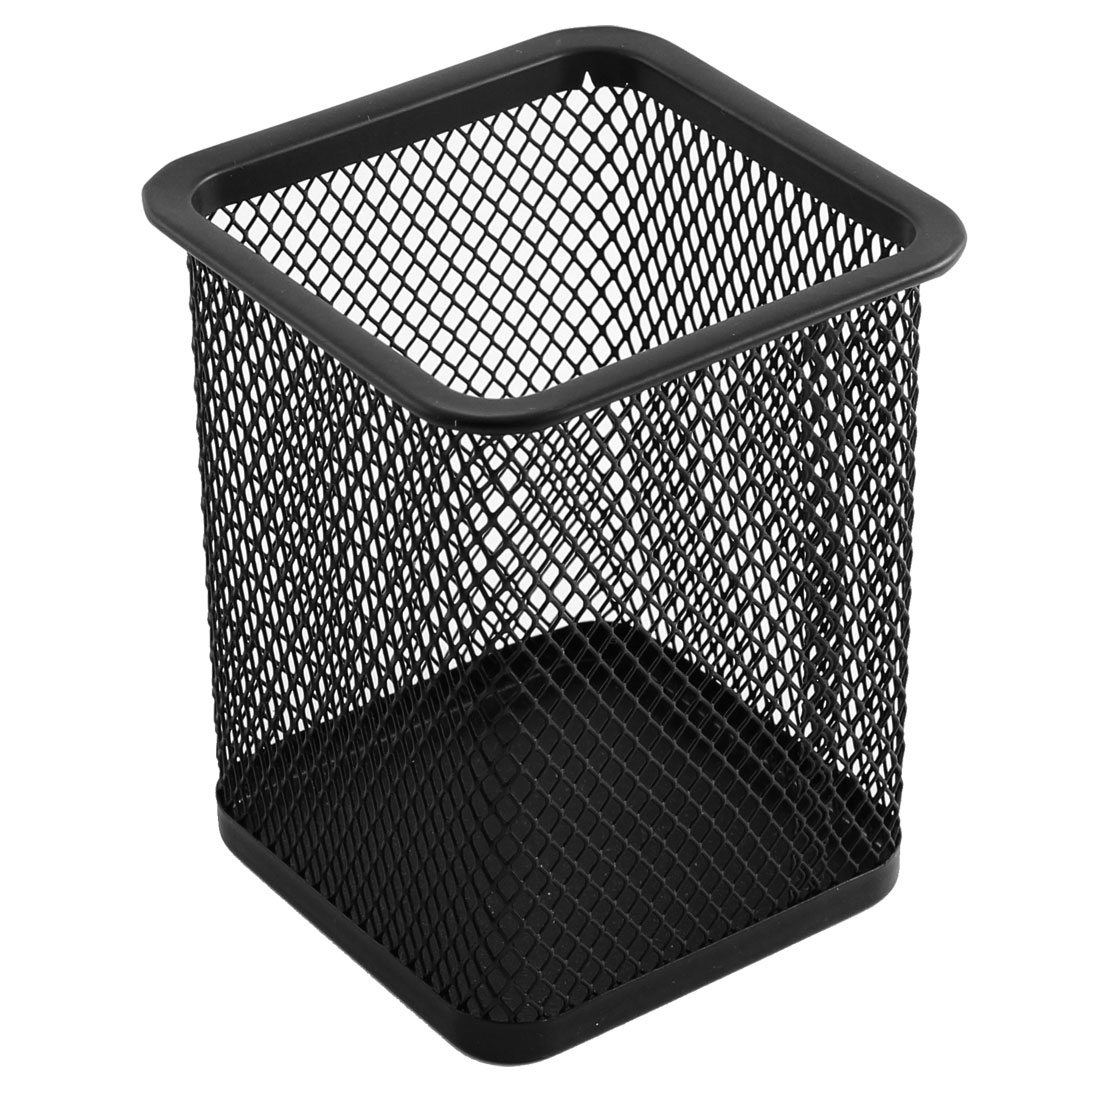 Office Metal Mesh Square Shaped Pen Pencil Case Holder Organizer Container Black